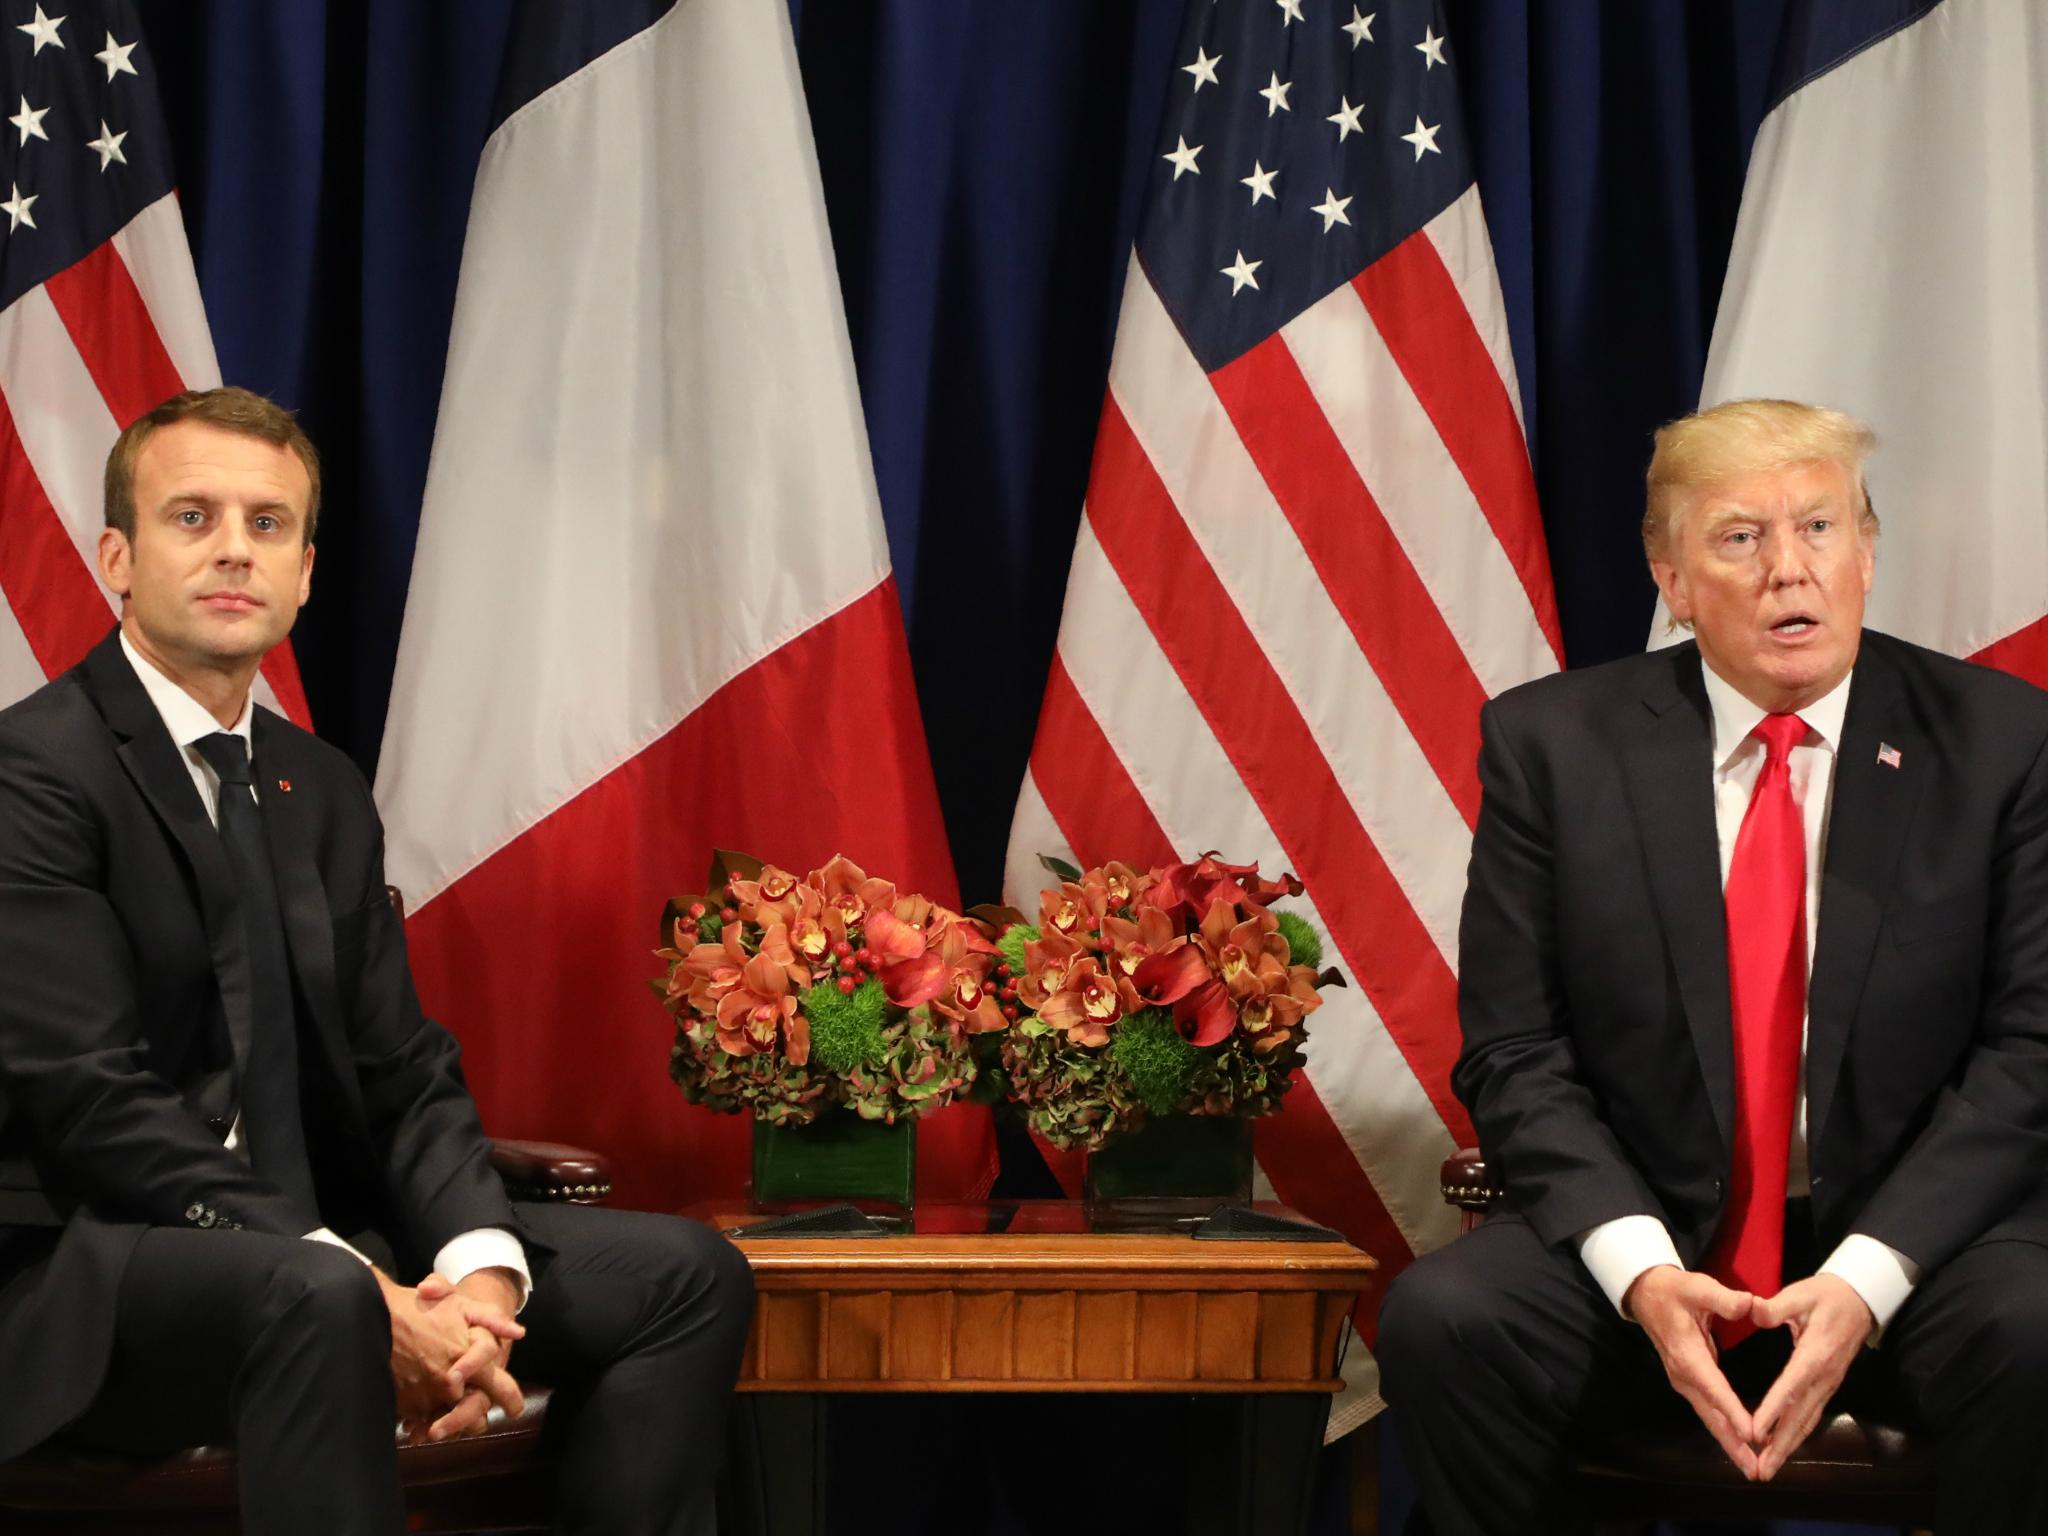 Donald Trump to host France's Emmanuel Macron in first state visit of his presidency